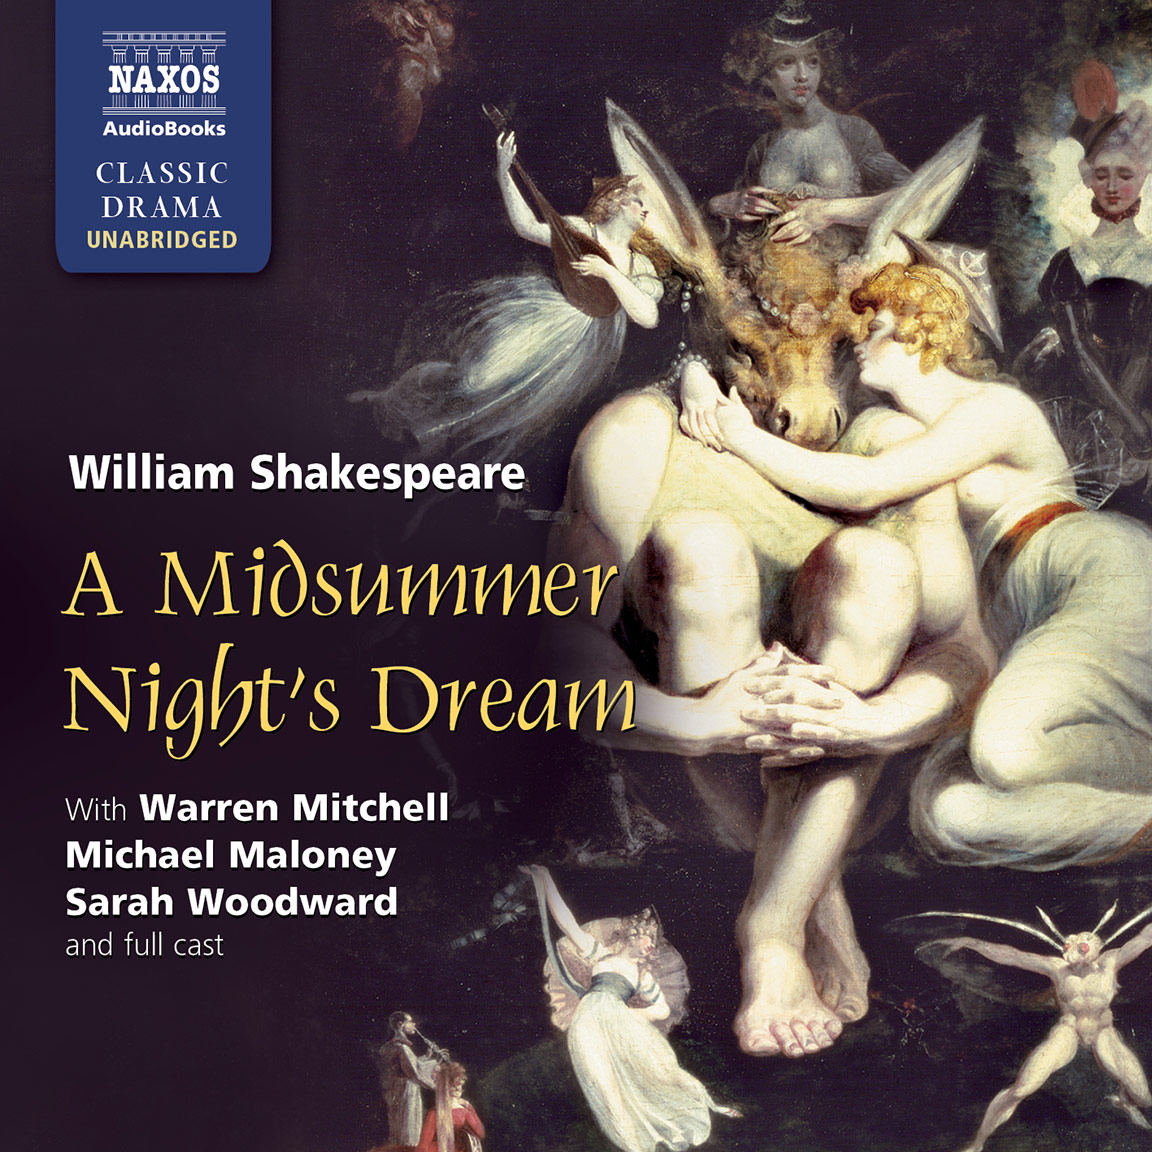 from shakespeare love selections naxos audiobooks midsummer night s dream